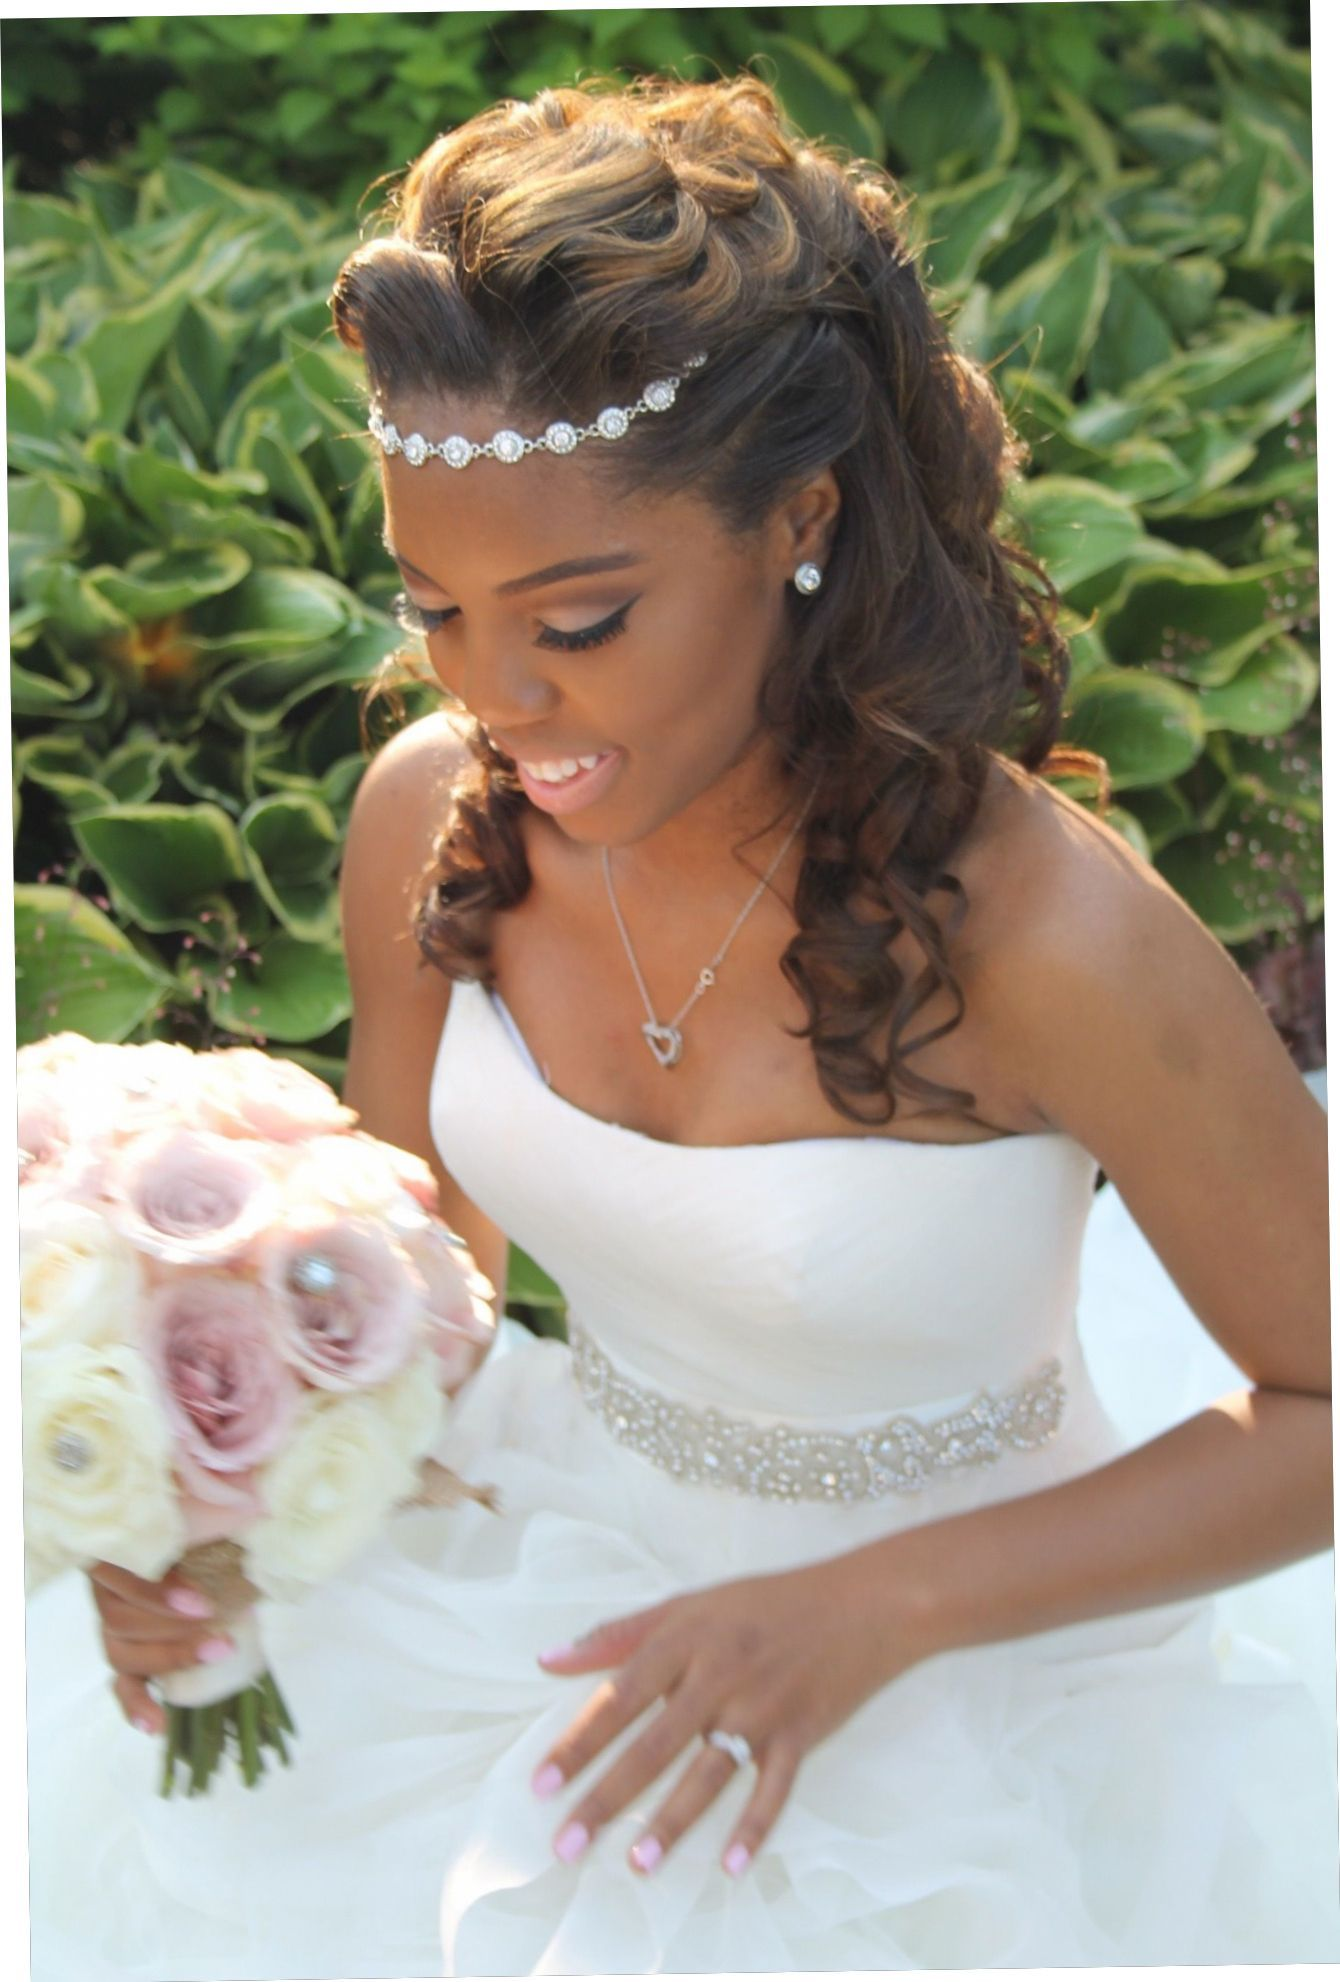 Wedding Hairstyle African American Straight Black Wedding Hairstyles Wedding Hairstyles For Girls Short Hair Styles African American